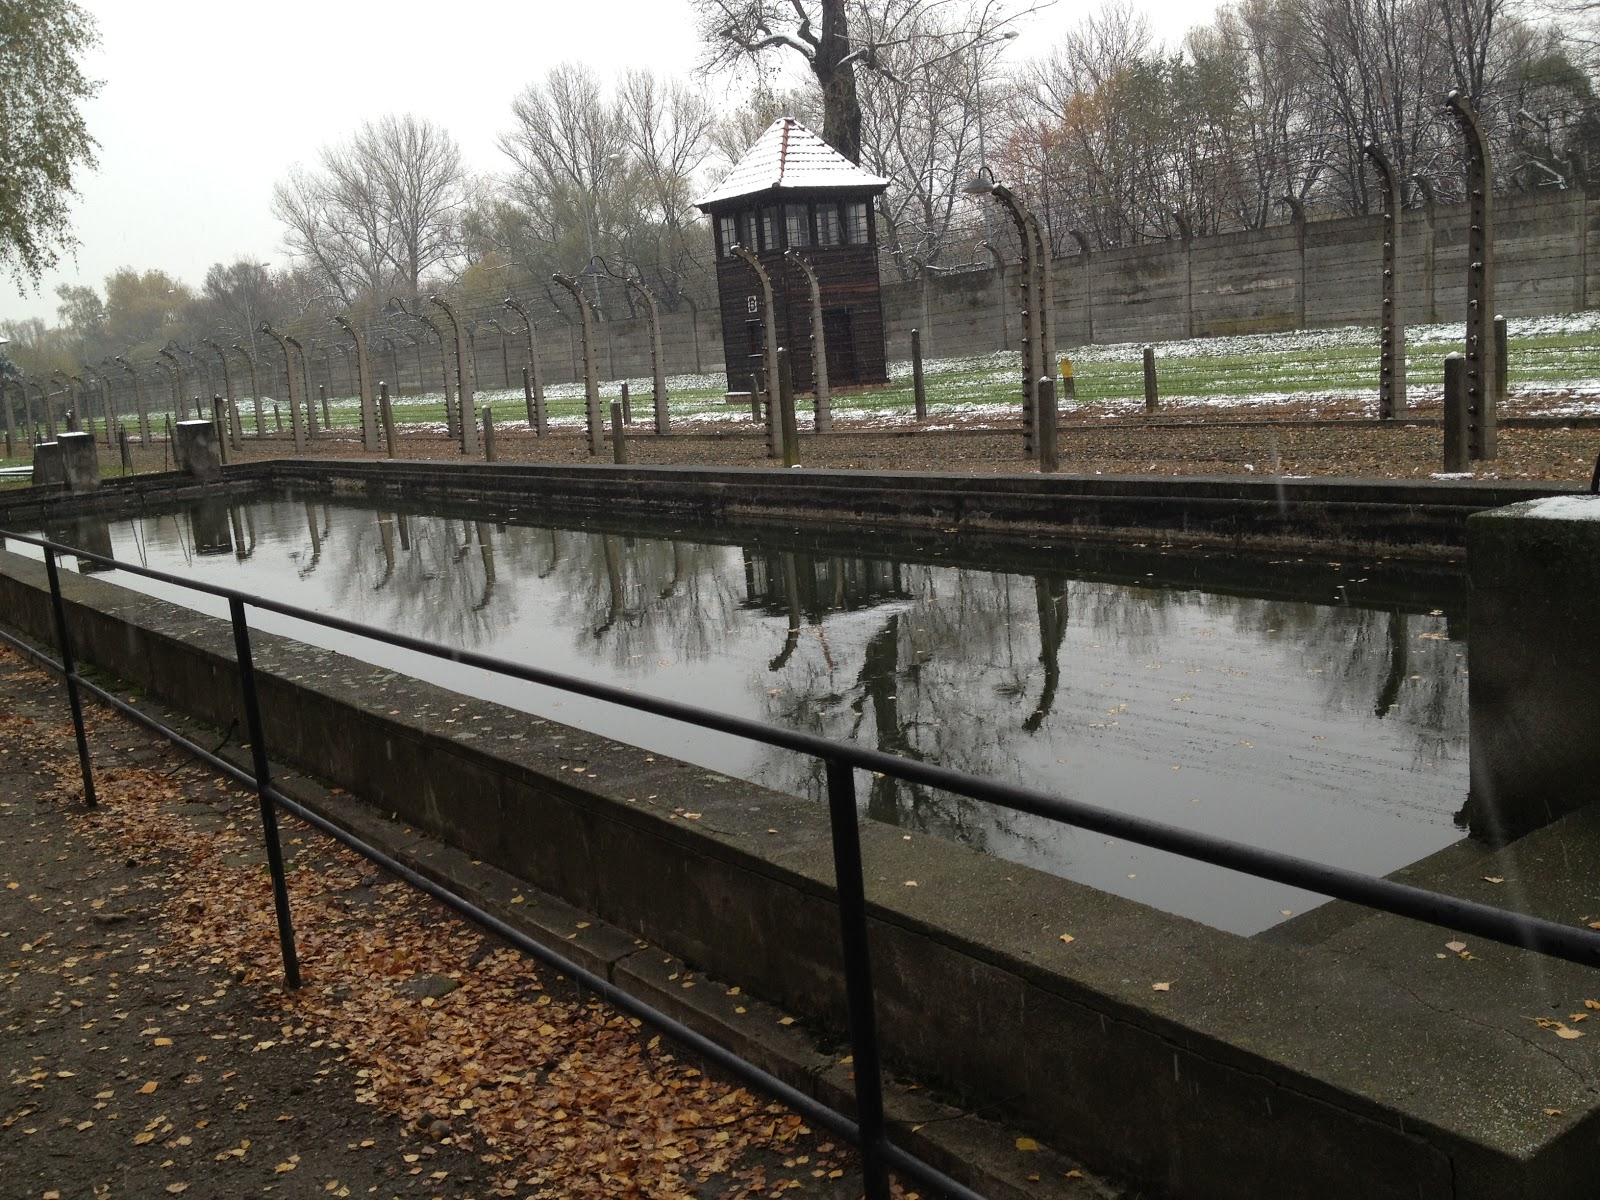 A Contrarian World My Pilgrimage To Auschwitz And The Tragic 39 Uniqueness 39 Of The Holocaust